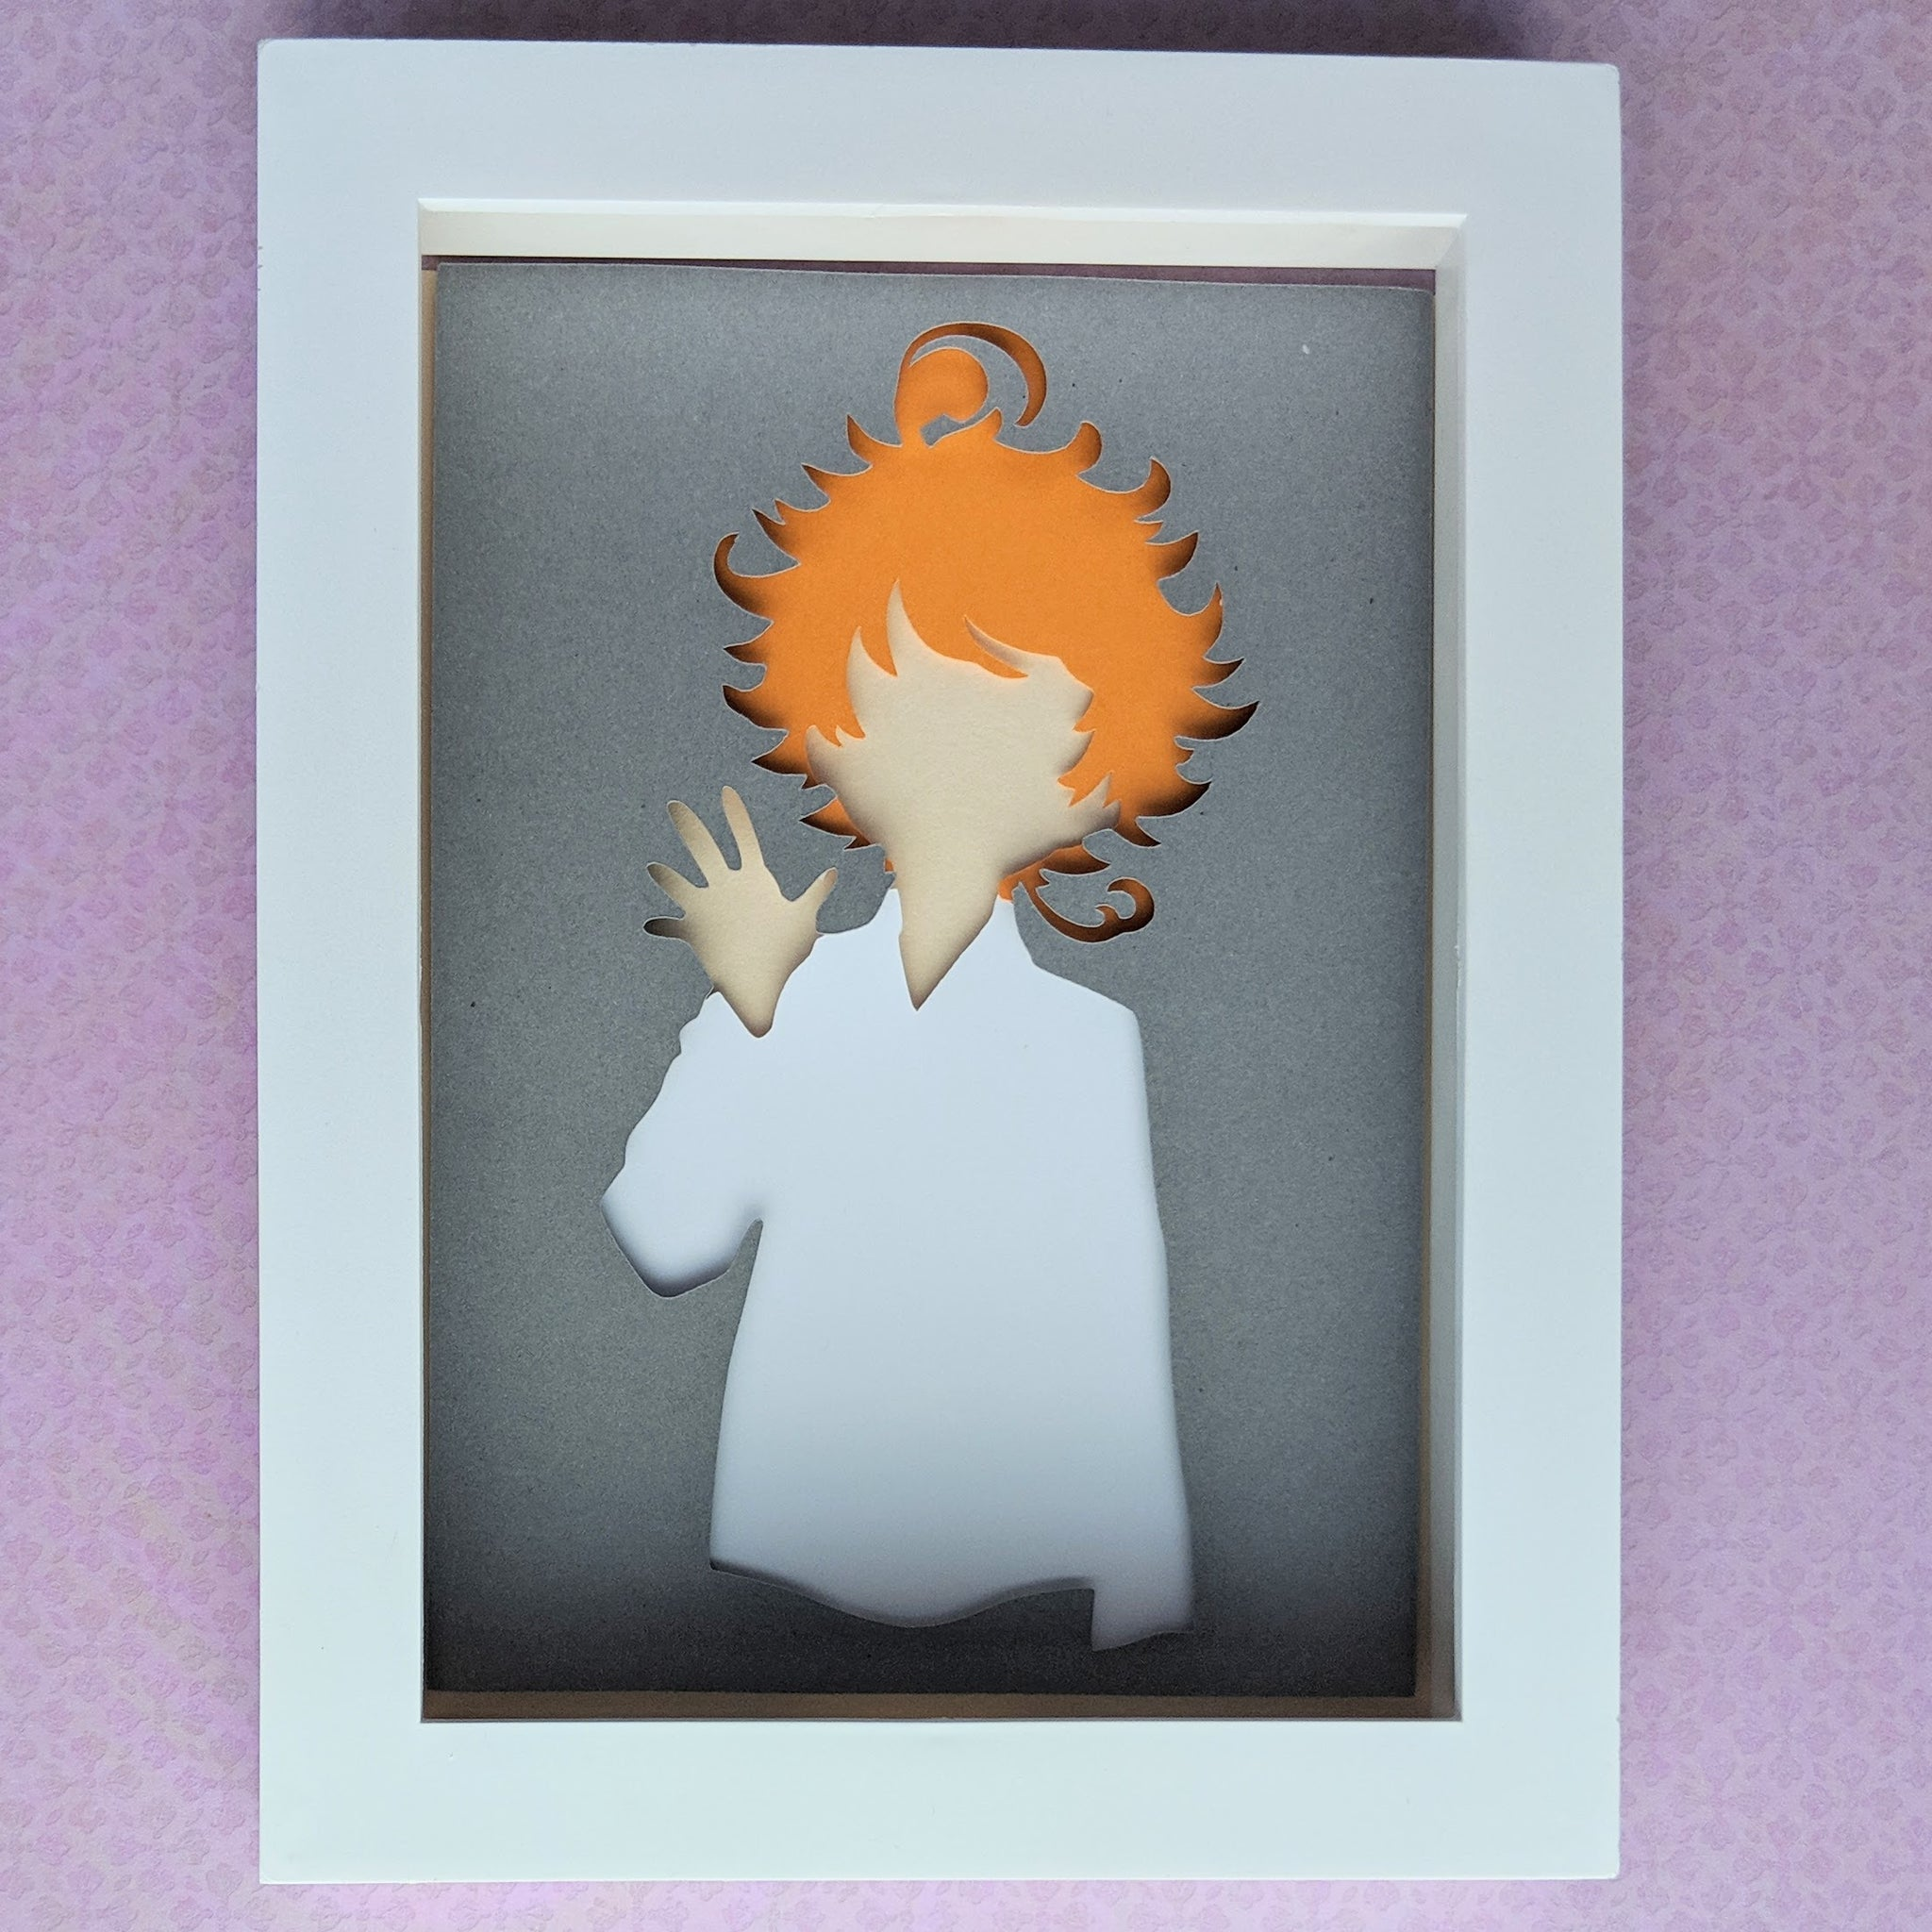 "Emma, Promised Neverland - 5""x7"" Shaowbox PaperCut"